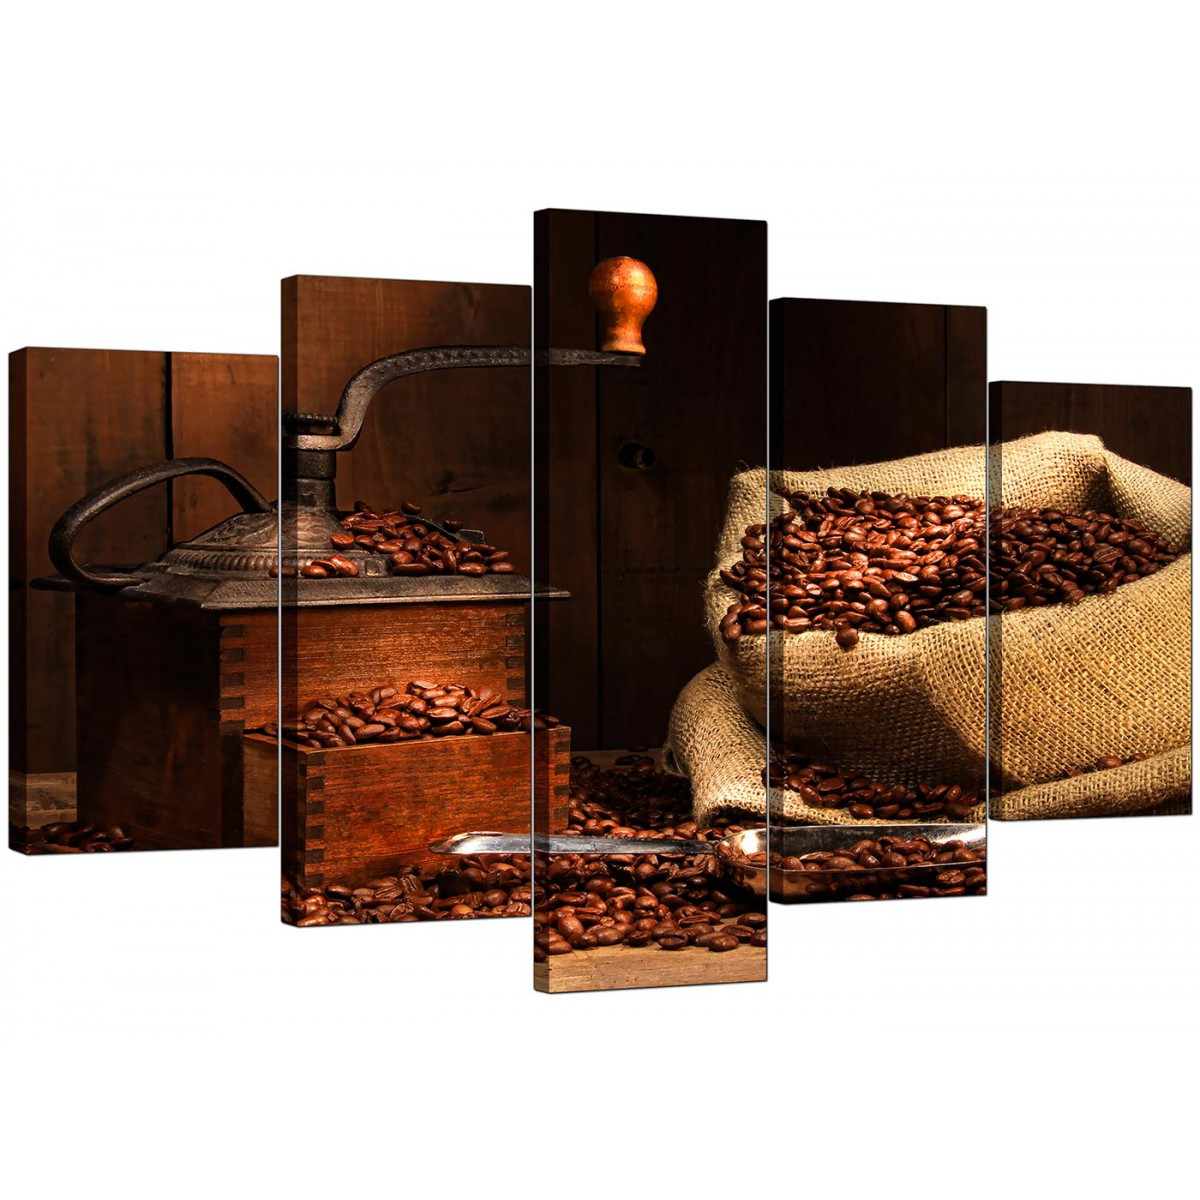 Extra Large Coffee Beans Canvas Wall Art 5 Piece In Brown